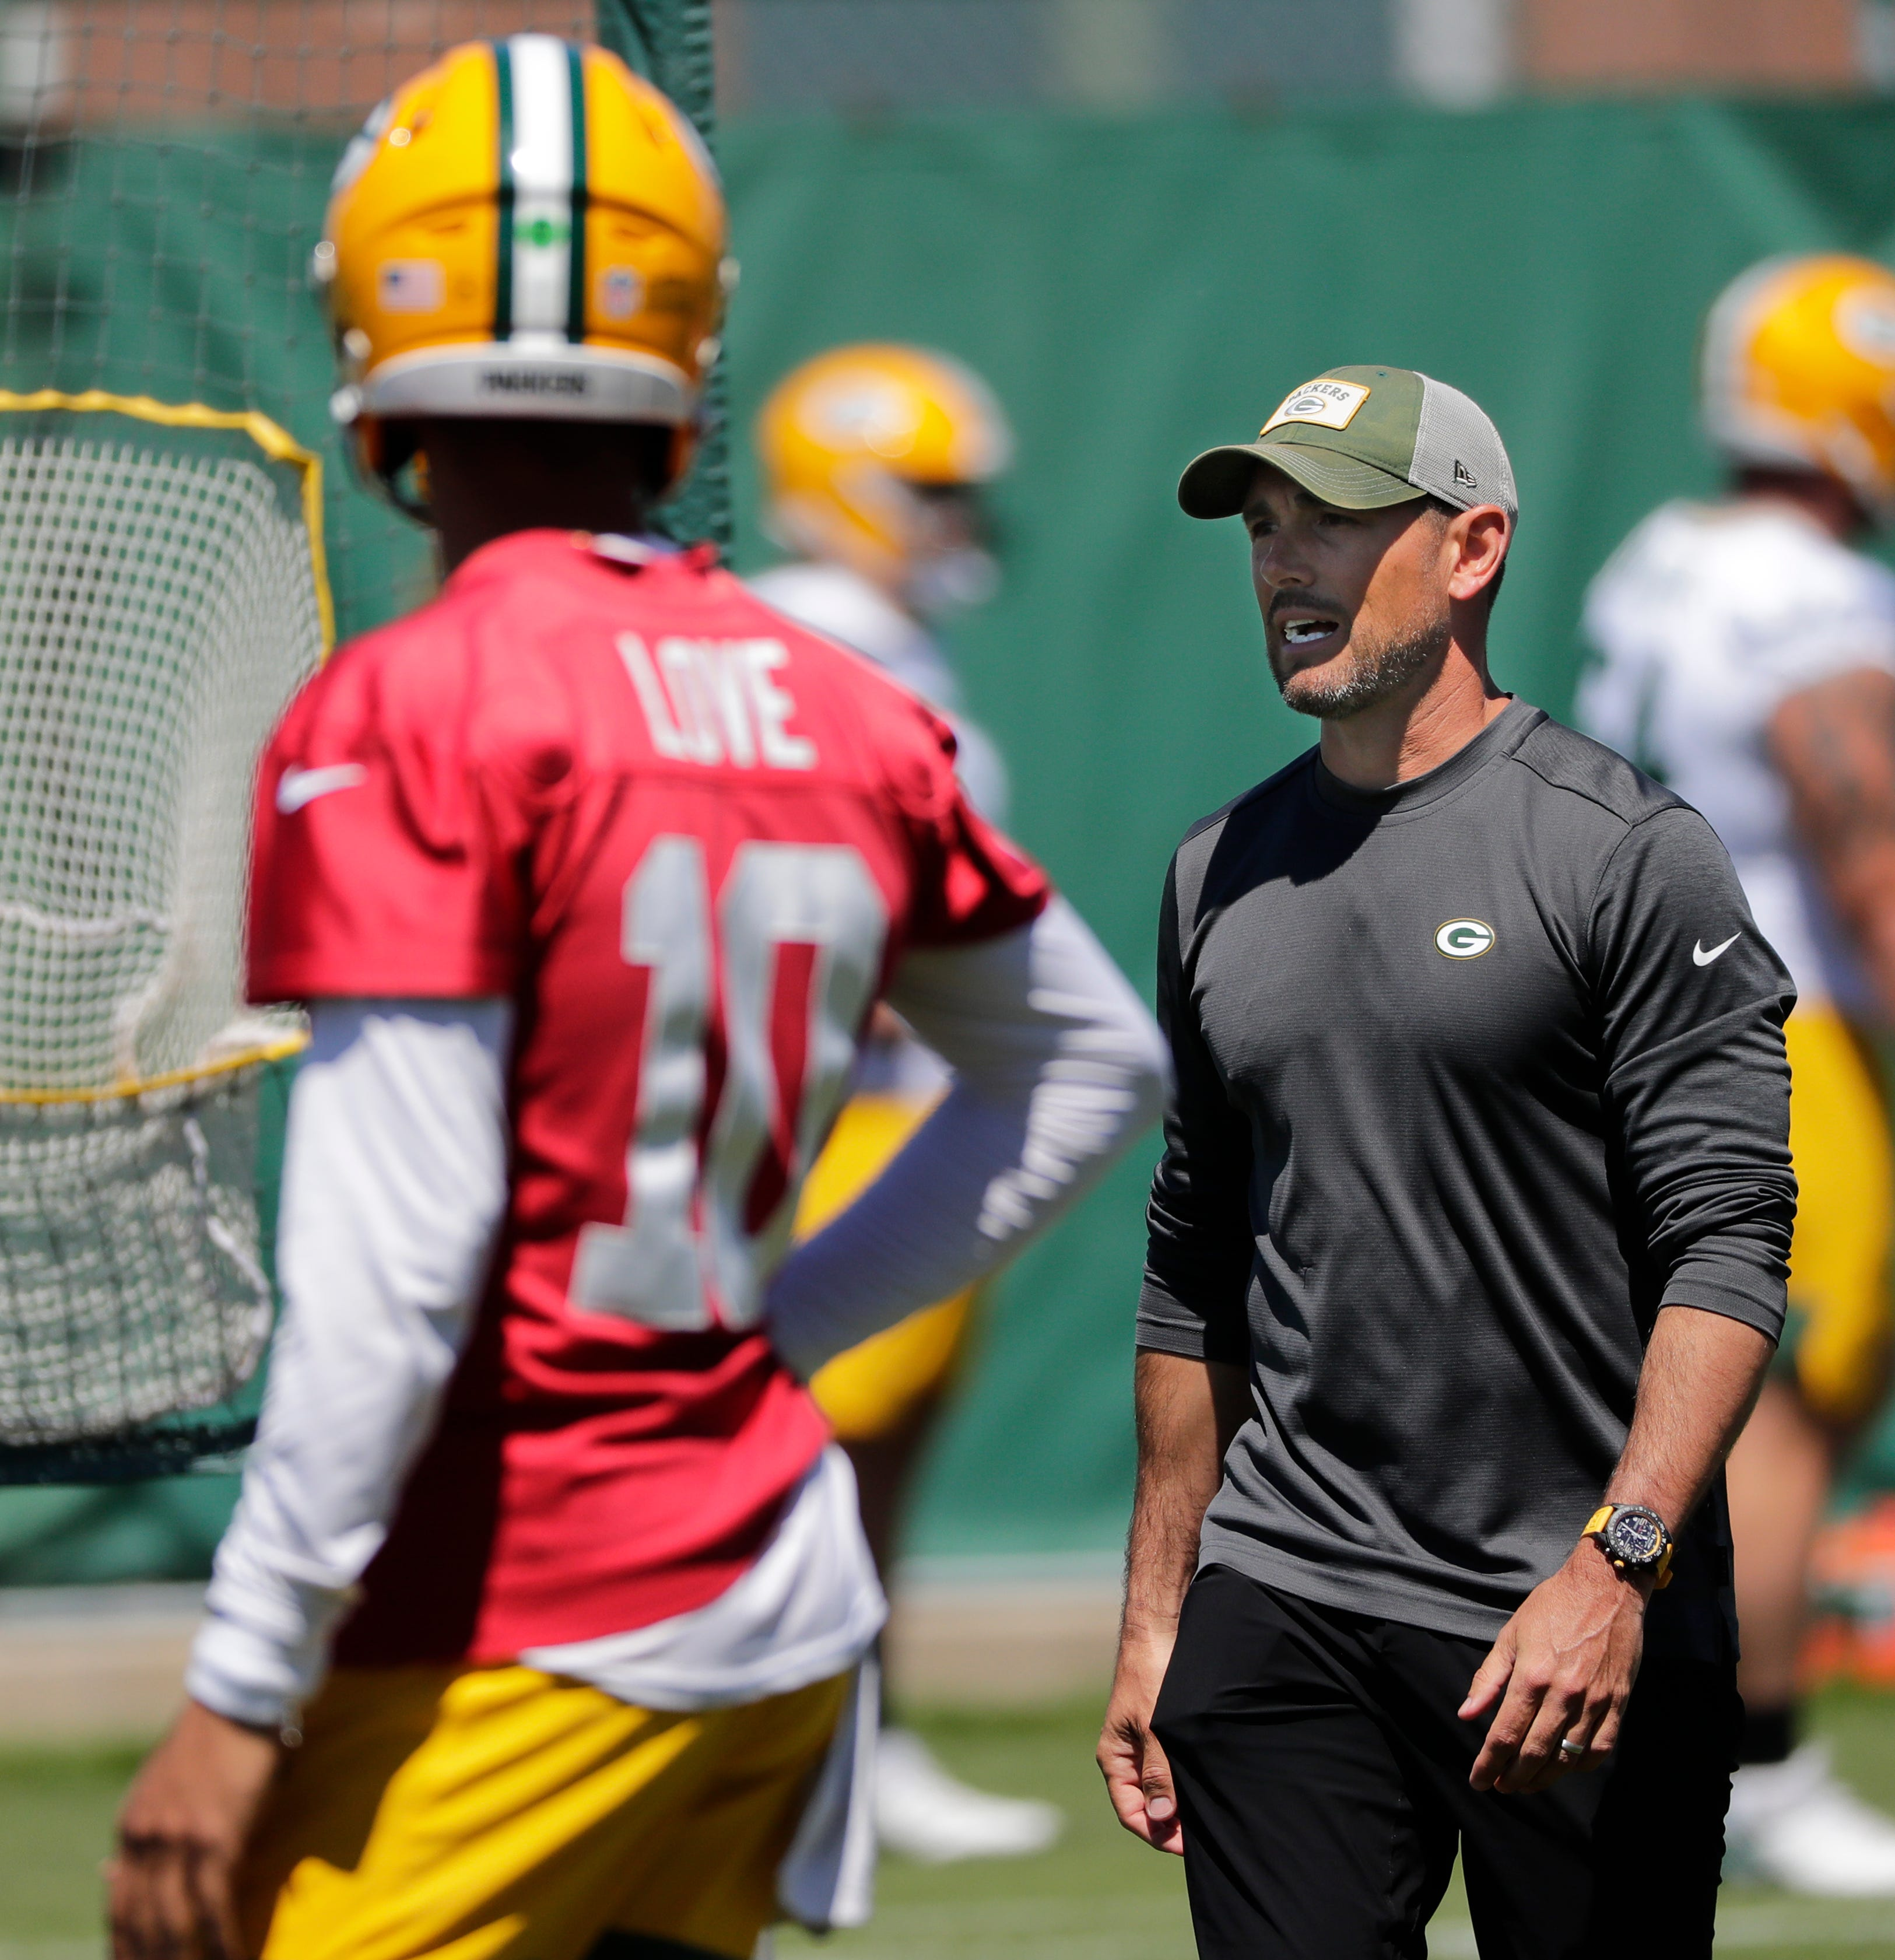 'We have one plan:' Packers coach Matt LaFleur prepared for training camp, with or without Aaron Rodgers